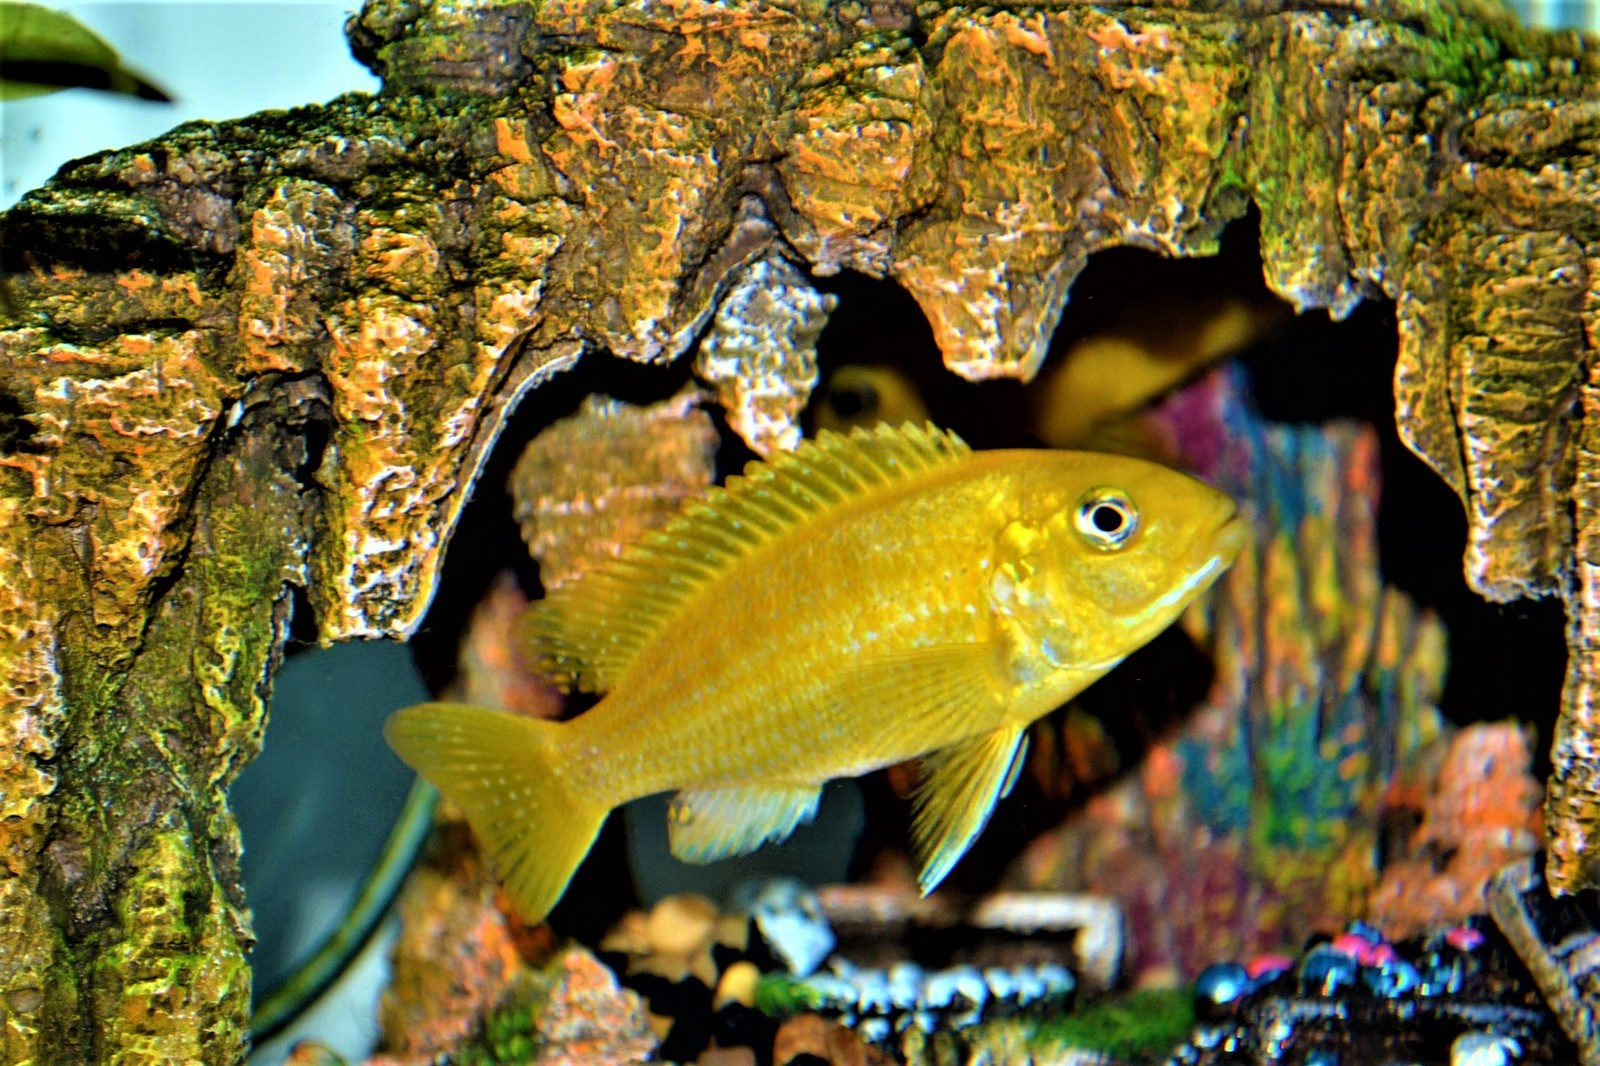 Yellow Lab Cichlid | by Rosa